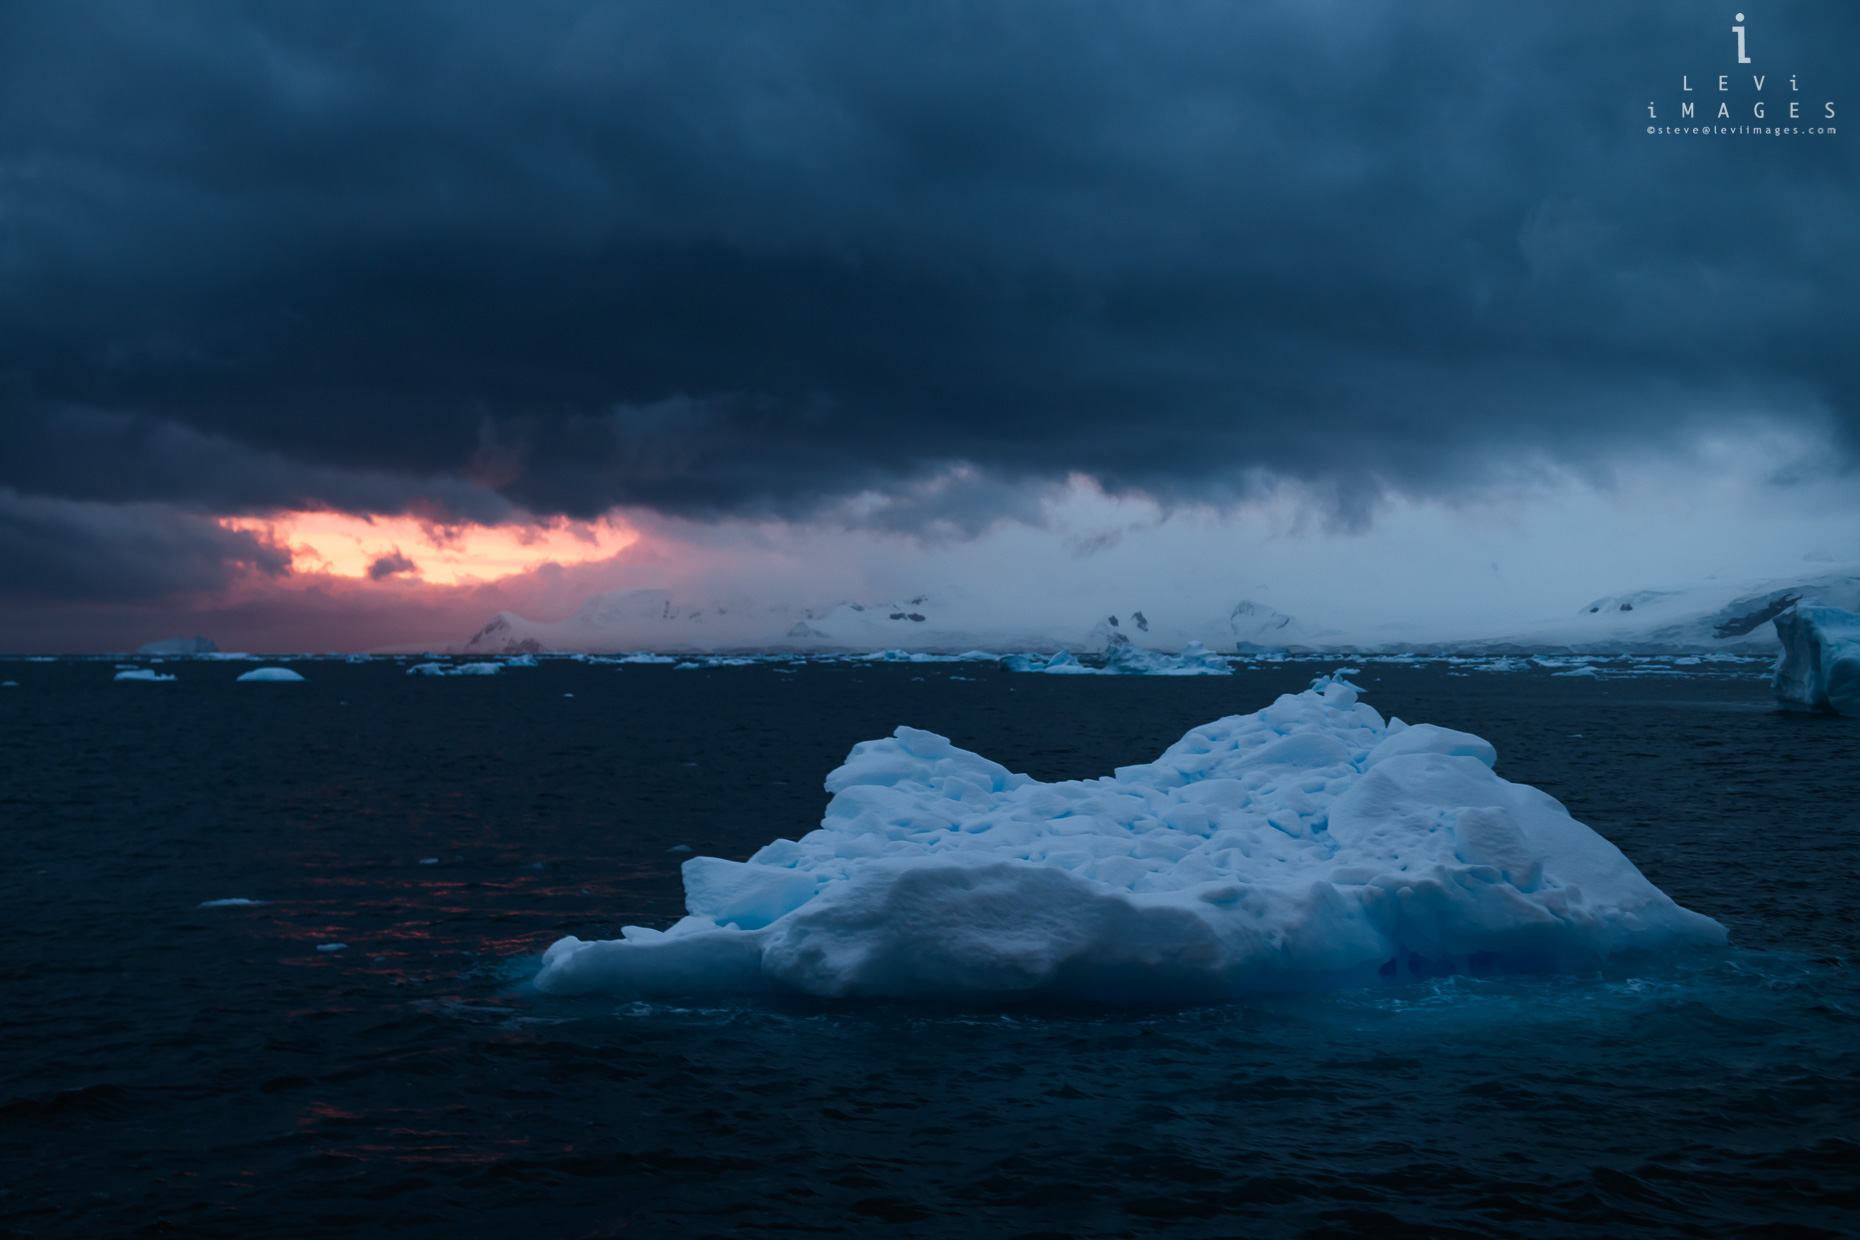 Dramatic sunset breaks through storm clouds over Antarctic landscape